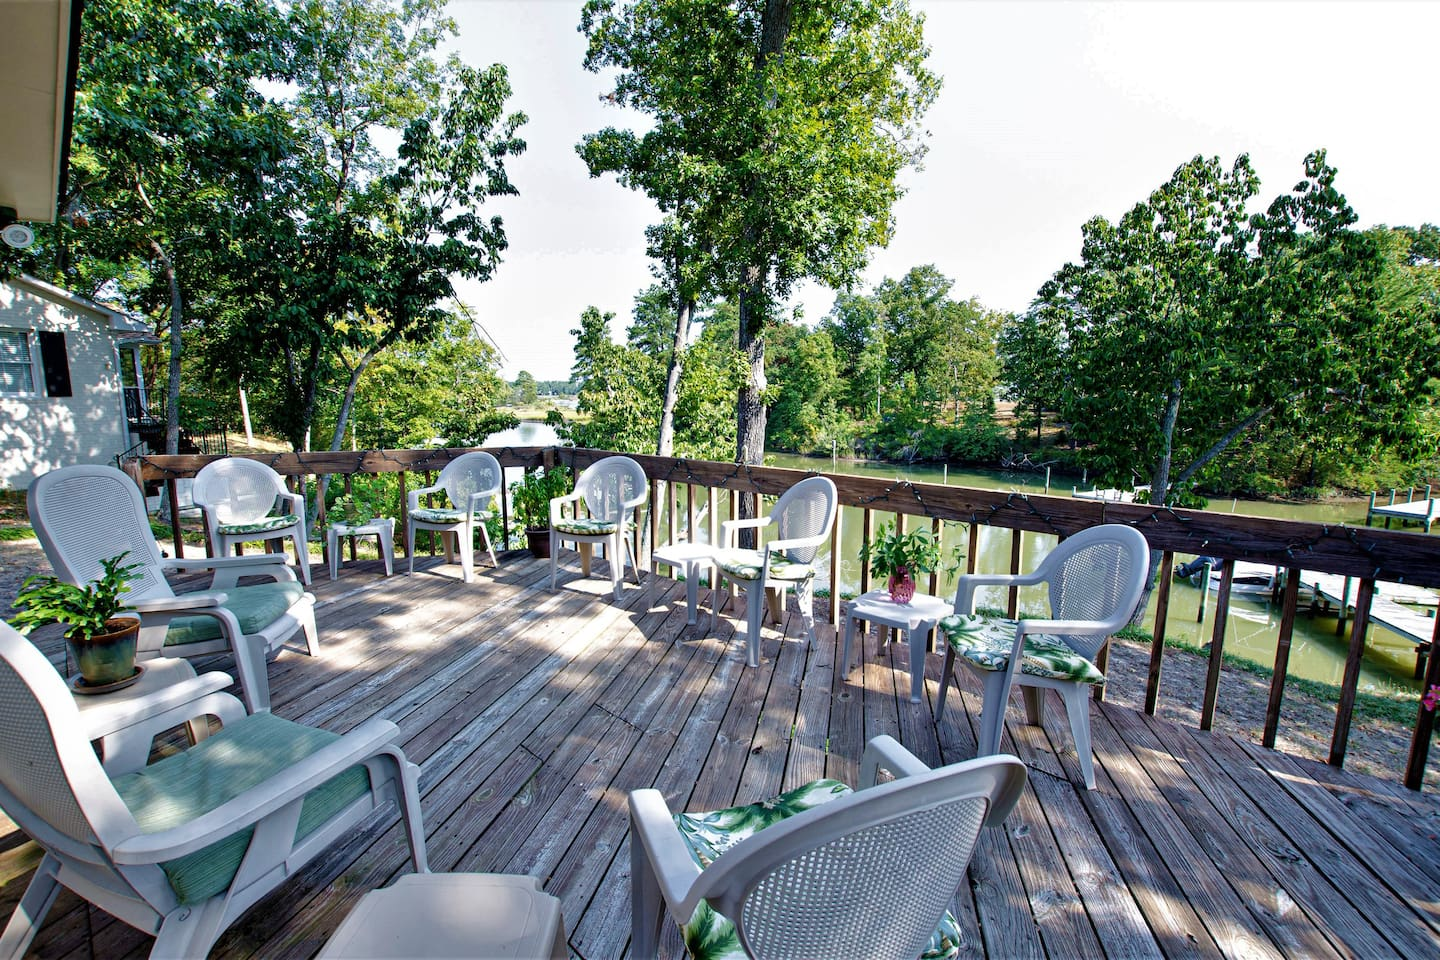 """LINGER AT THE RIVER"" while relaxing on the deck overlooking Perkins Creek enjoying its wonderful views and incredible wildlife in the town of Urbanna. Nearby are restaurants, Piankatank Golf Course, marinas, National croquet course, and wineries."